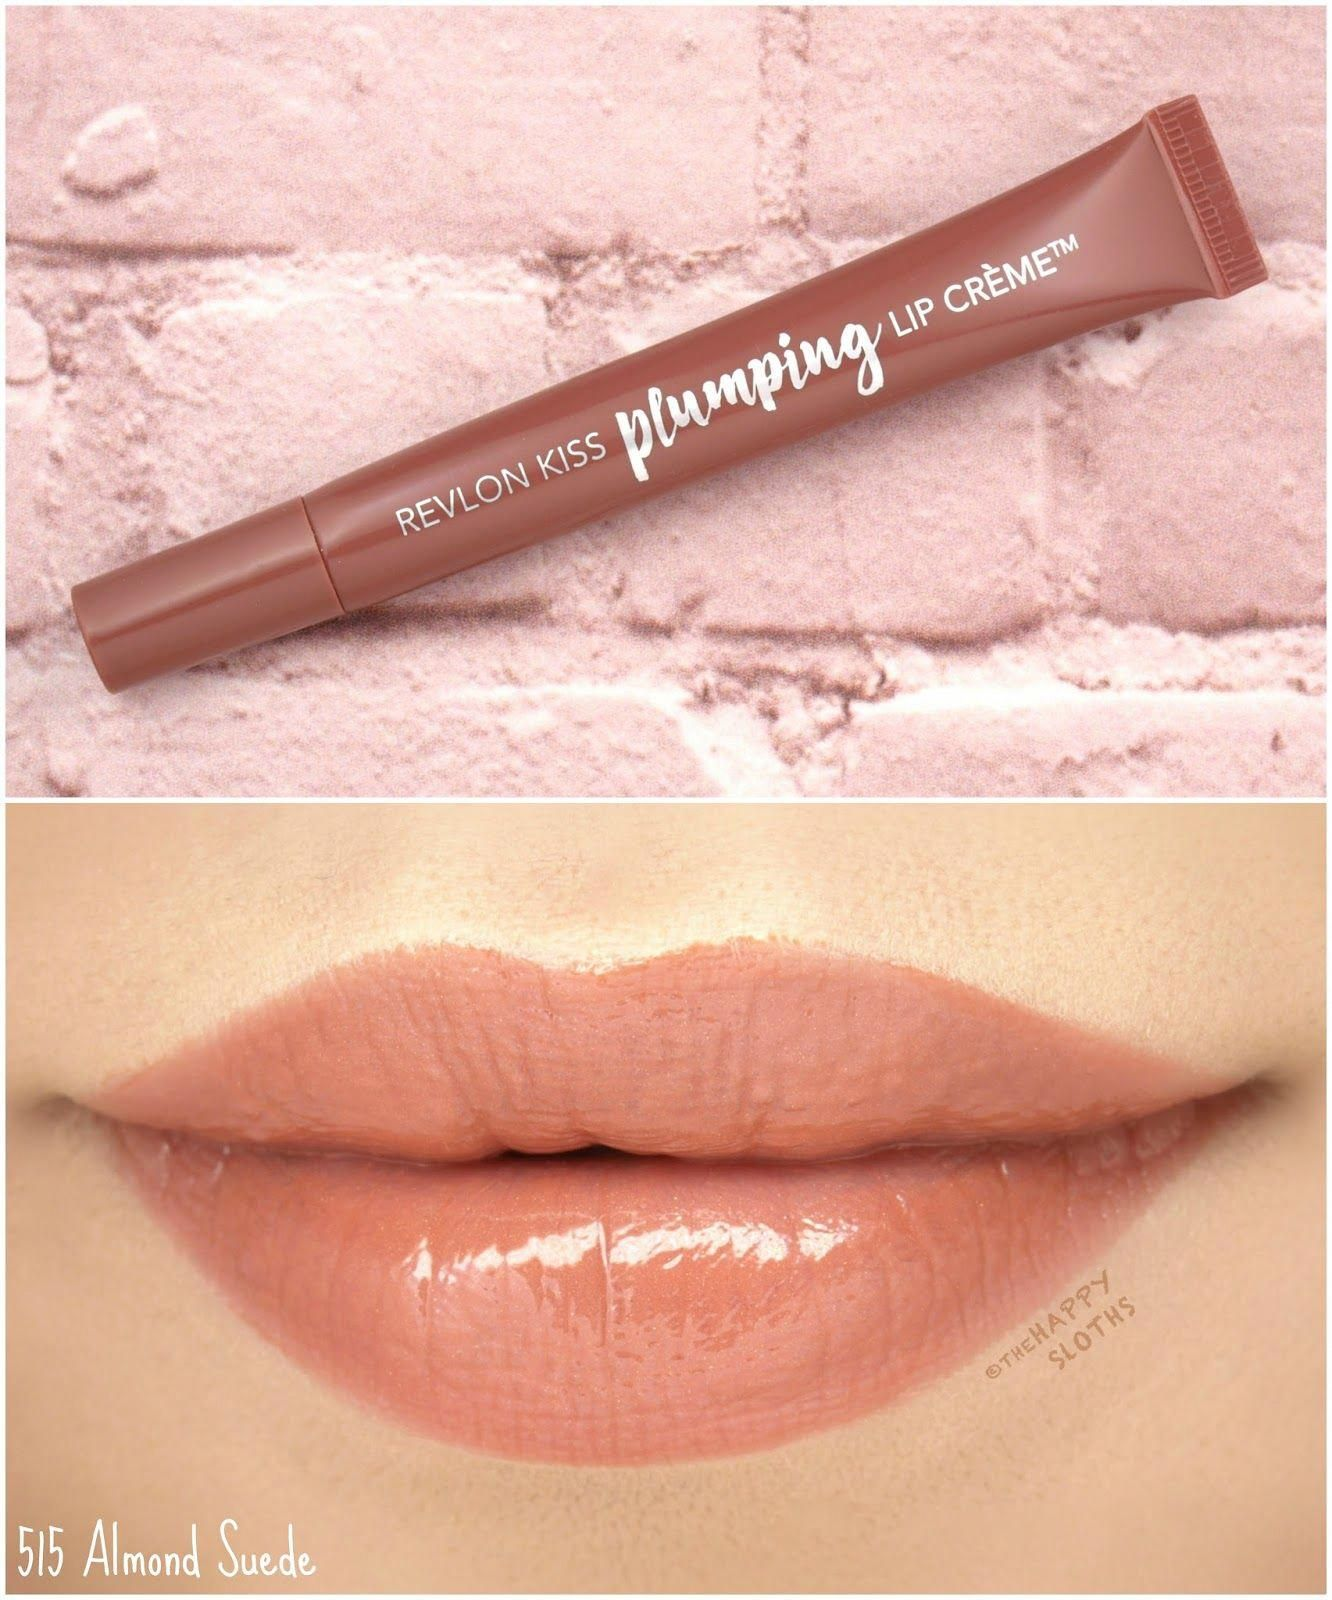 Revlon Kiss Plumping Lip Creme In 515 Almond Suede Review And